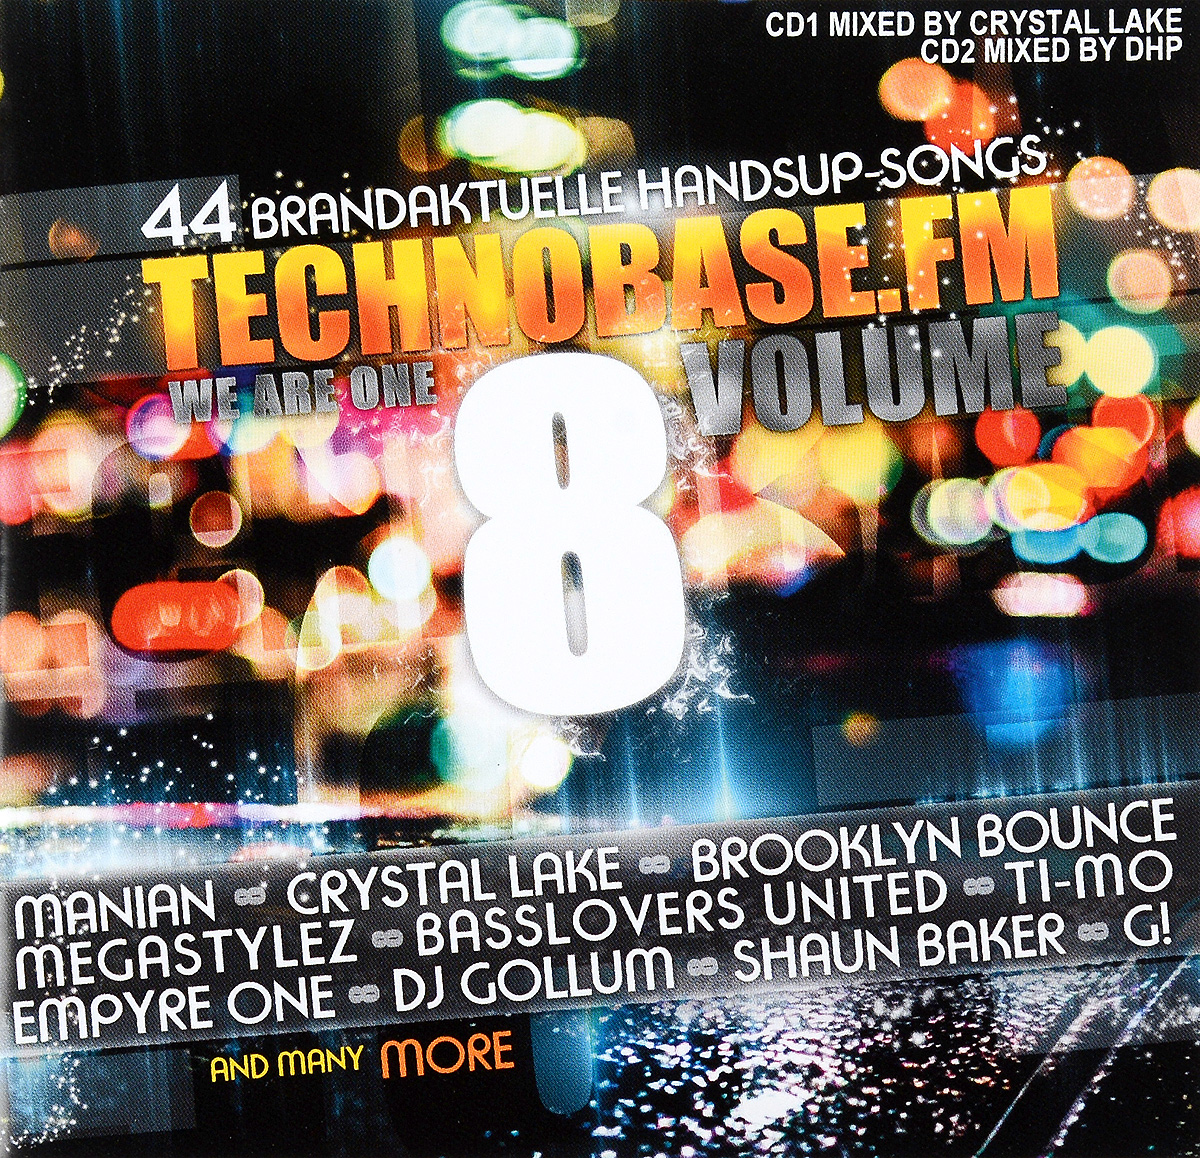 Crystal Lake,Brooklyn Bounce,Taya,DJ Ross,Marvin,Section 1,Leony!,Manian,X-Cess!,Combination,Lynch,Aacher,Level Zero,Tribune,Damn-R,Redtzer,Camera X,Roxor,Hardfader,Dancefloor Kingz Technobase.Fm. Volume 8 (2 CD) leather s dj amdition level 2 cd